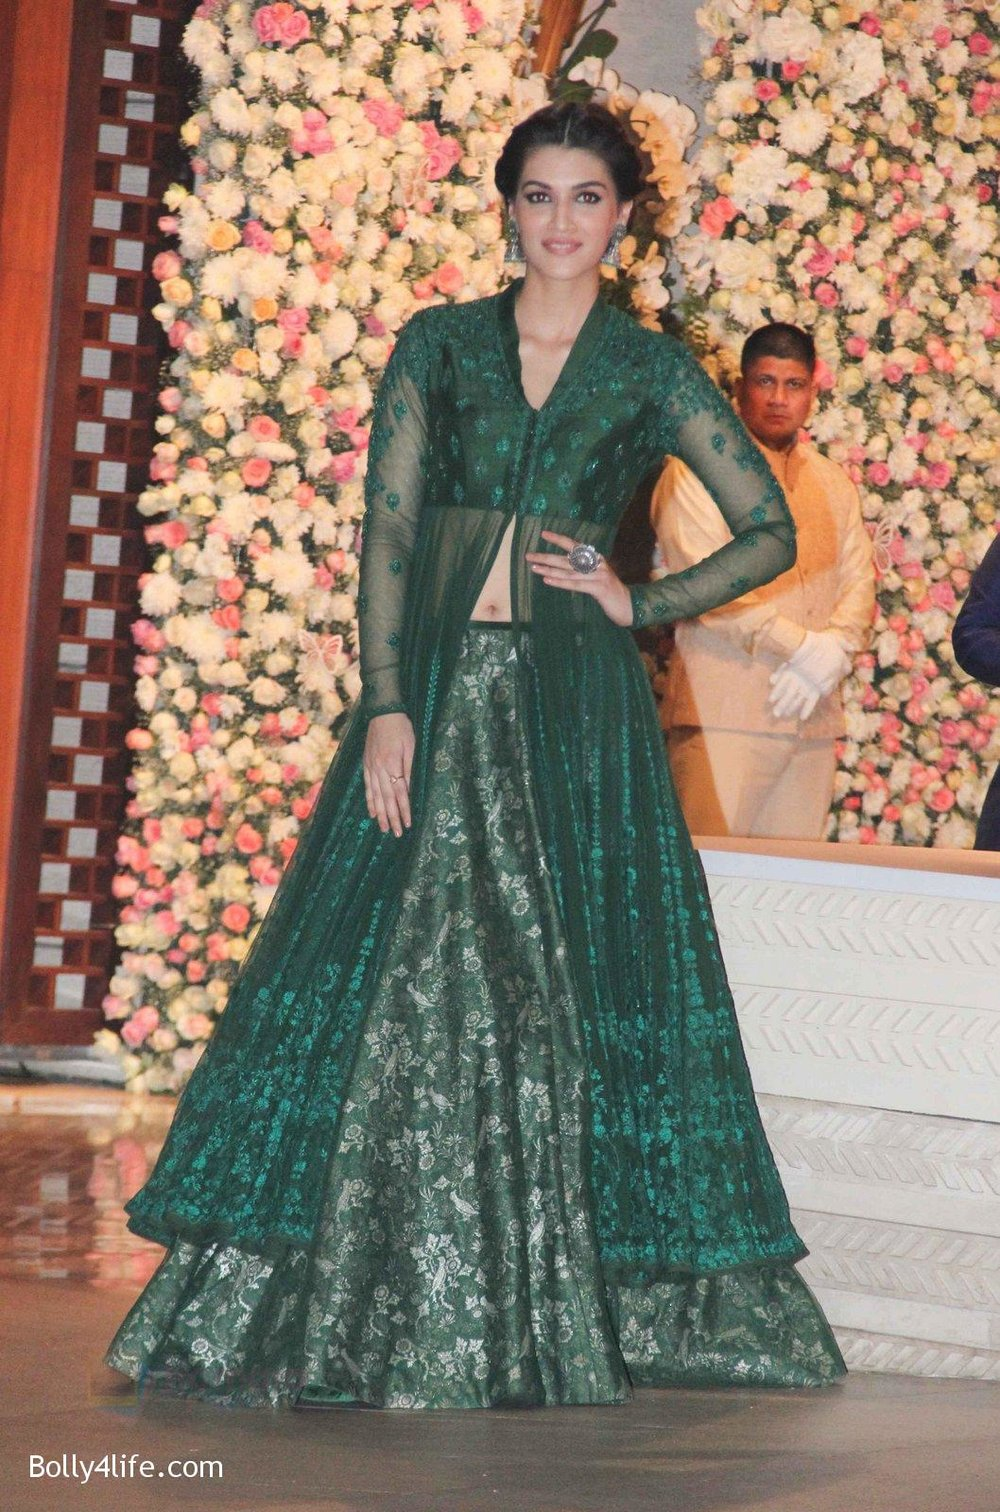 Kriti-Sanon-at-the-Ambanis-wedding-party-of-their-niece-Isheta-Salgaoncar-3.jpg